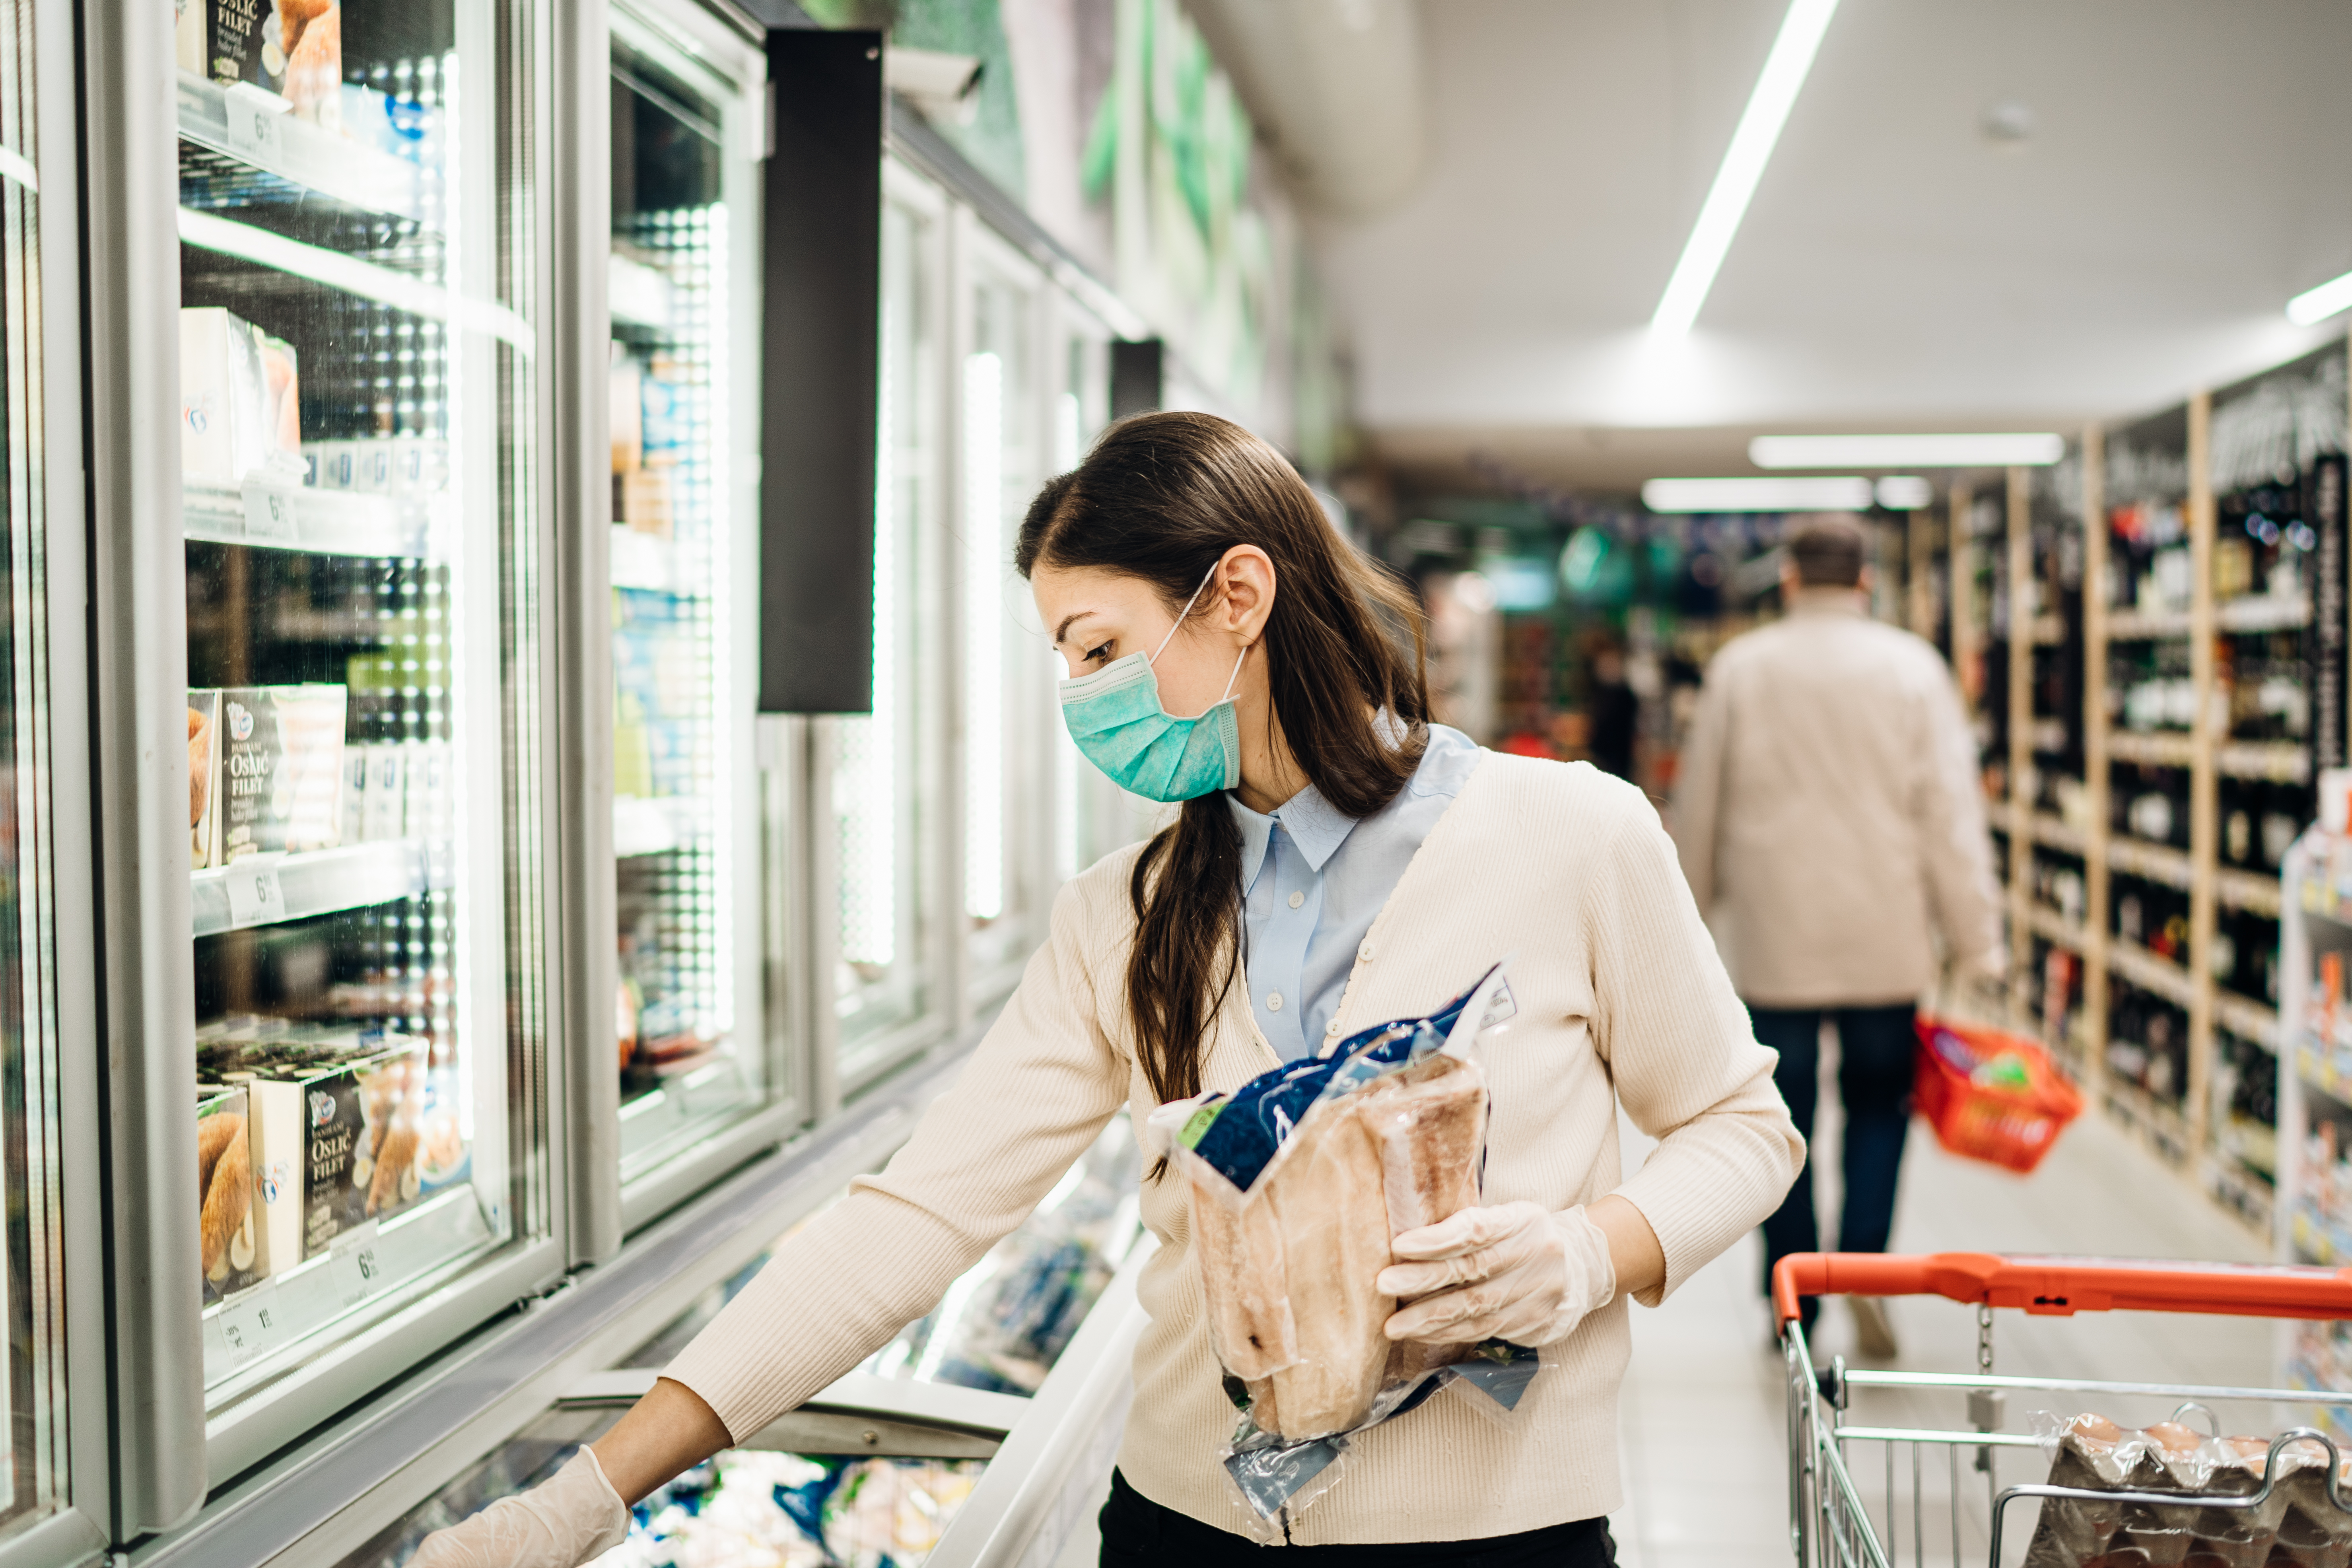 Woman in a mask while at the supermarket.